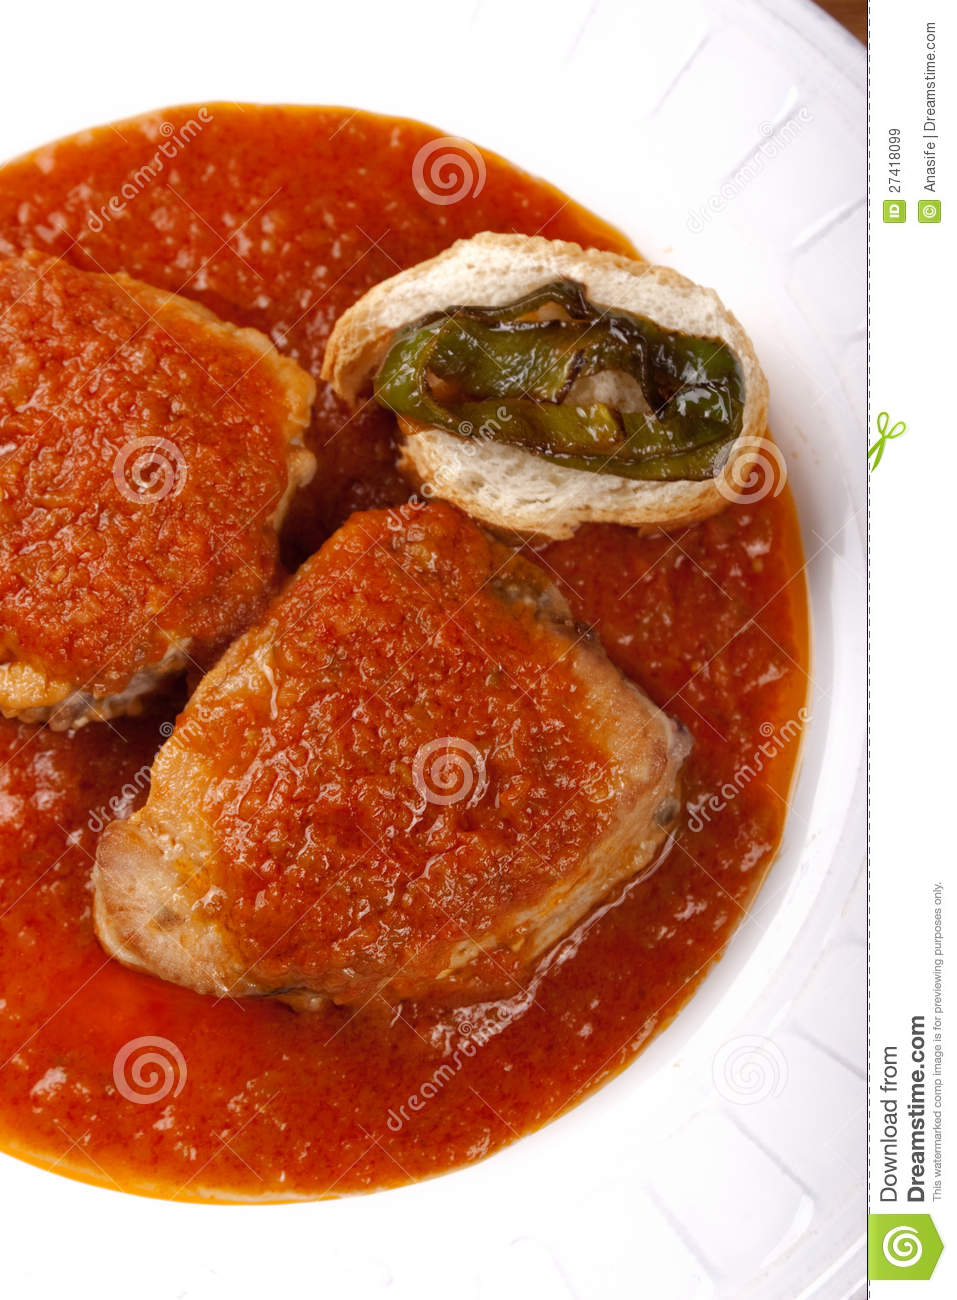 Tuna Fish In Tomato Sauce With Pepper And Bread Royalty Free Stock ...